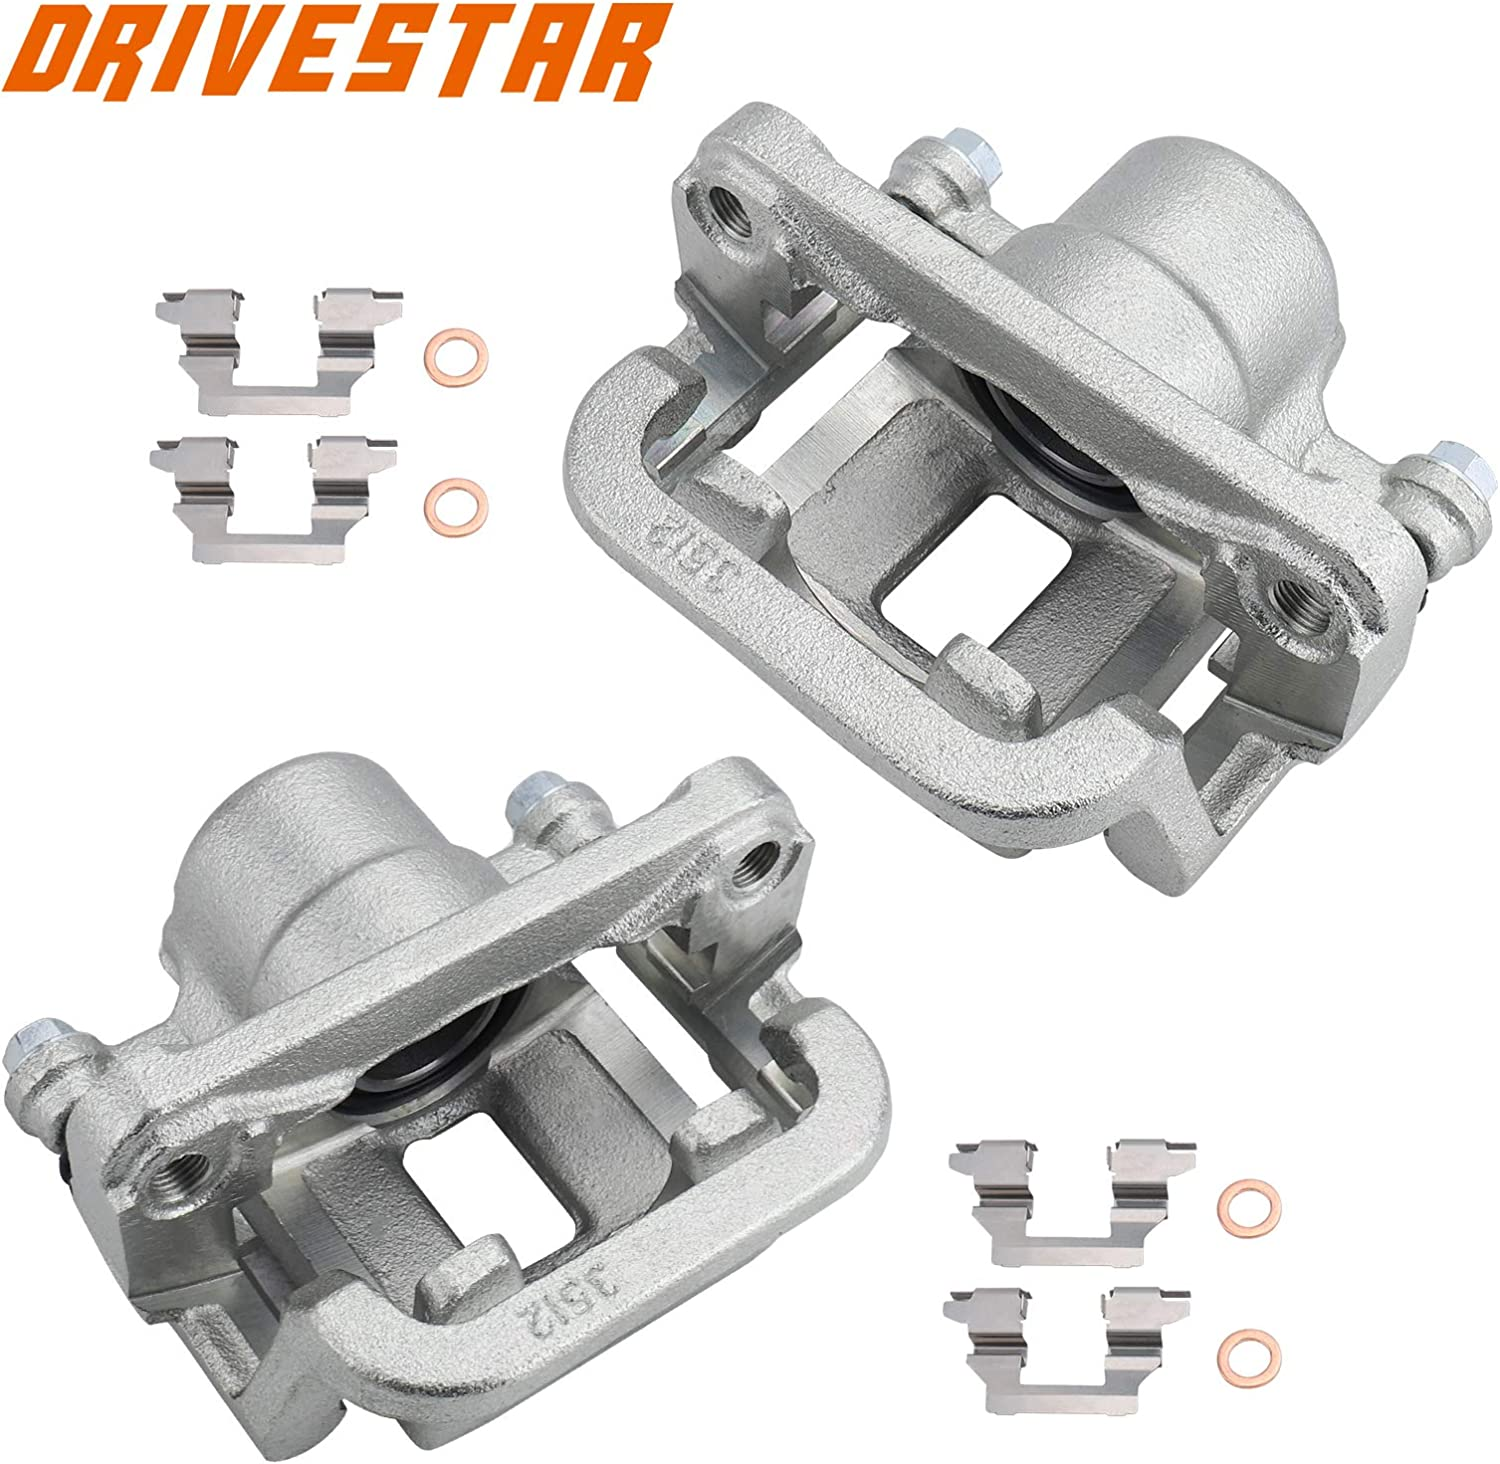 A-Premium Brake Caliper Assembly Compatible with Infiniti G35 Nissan 350Z Murano Quest 2003-2009 Rear Left